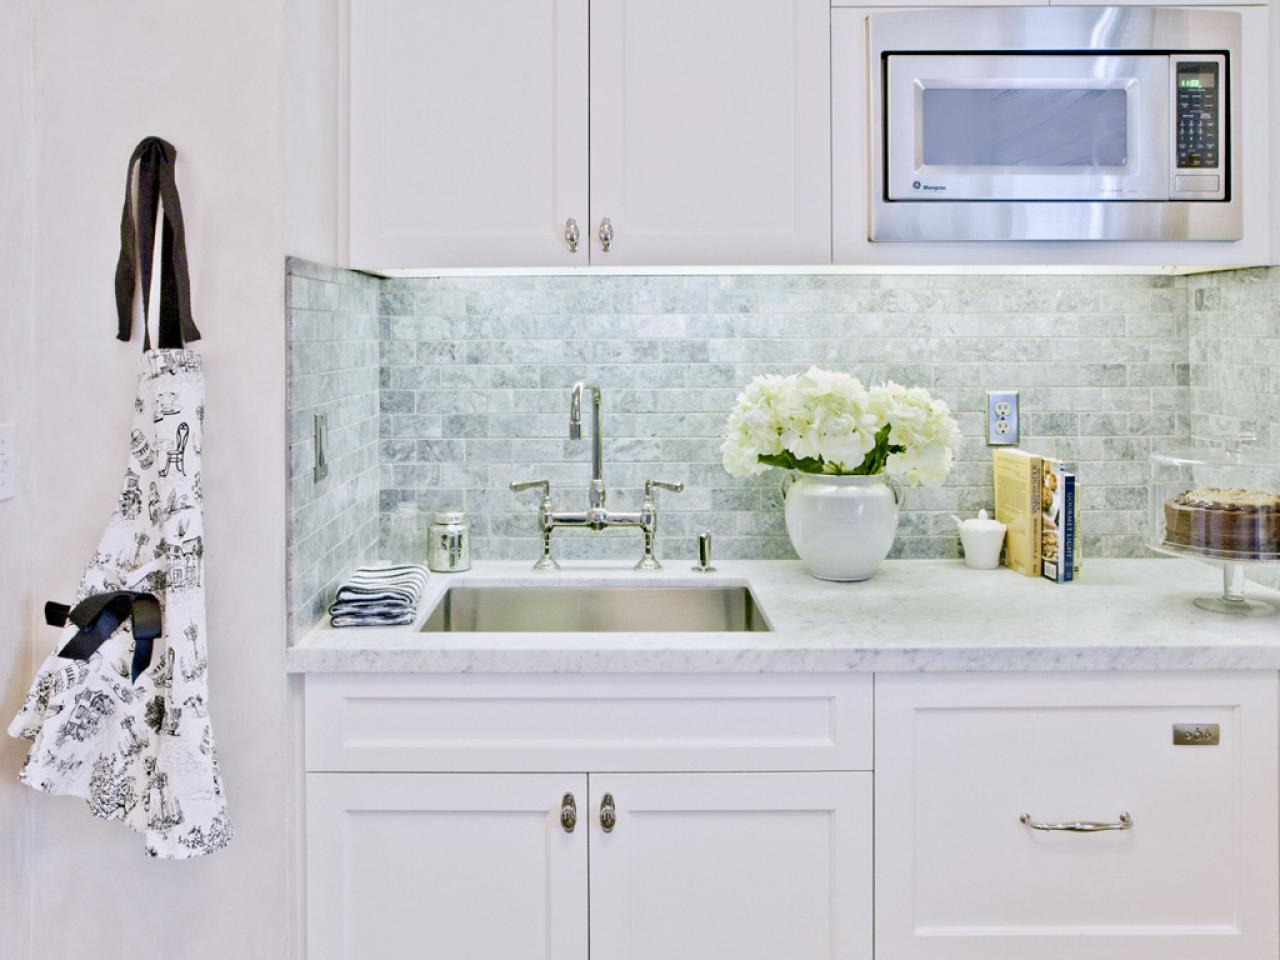 Subway Tile Backsplashes Pictures Ideas Tips From HGTV – Subway Tile Colors Kitchen